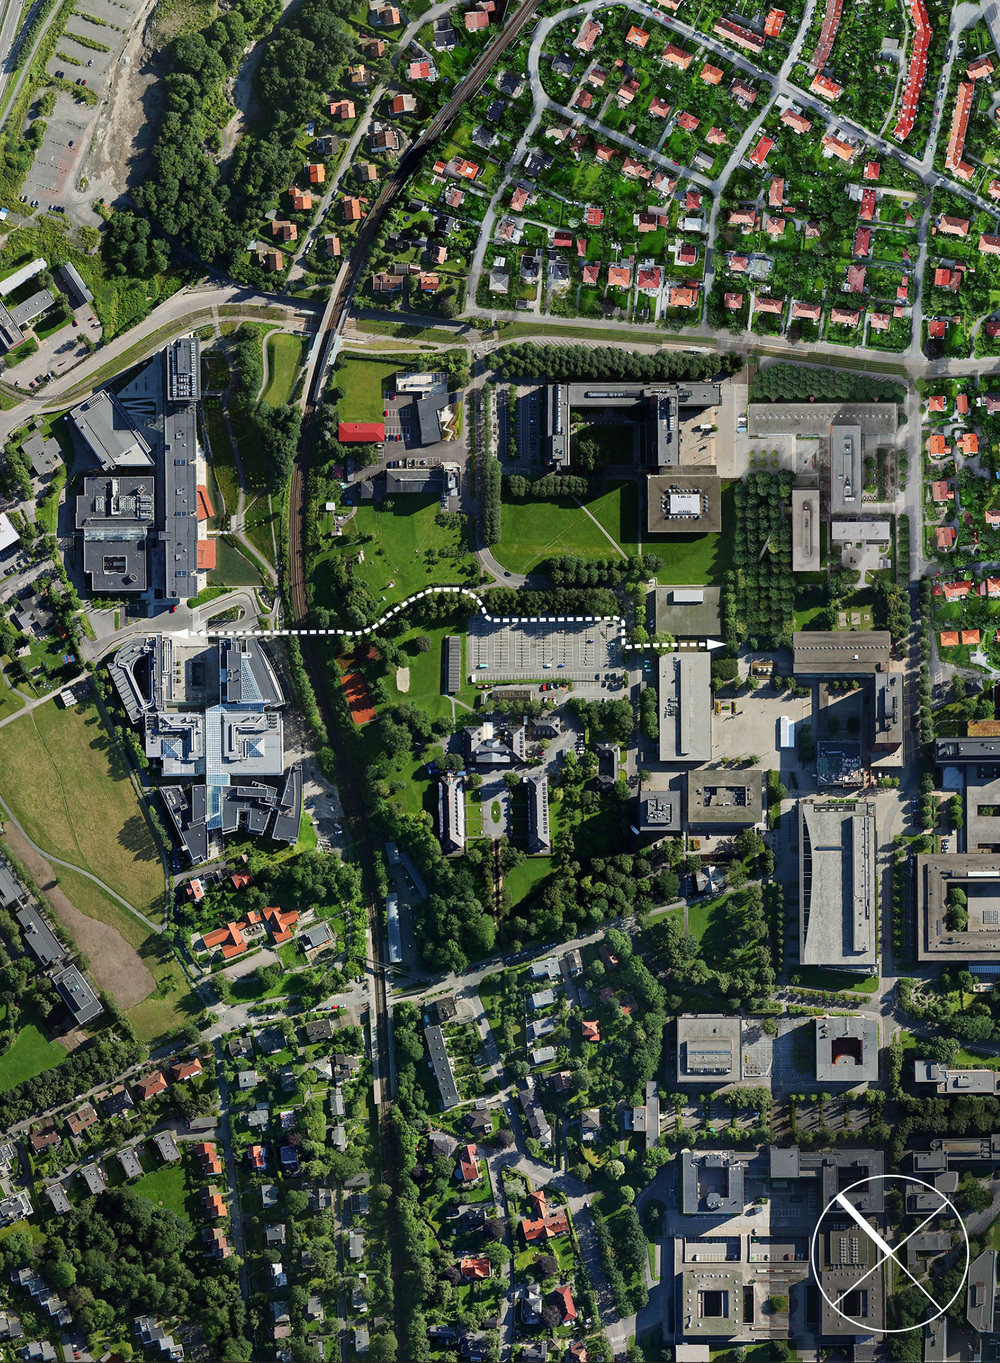 The route and in-between space Gaustadbekkdalen and Blindern campus. Upper left corner is the Life Science Center plot. Photo credit: Tin Phan